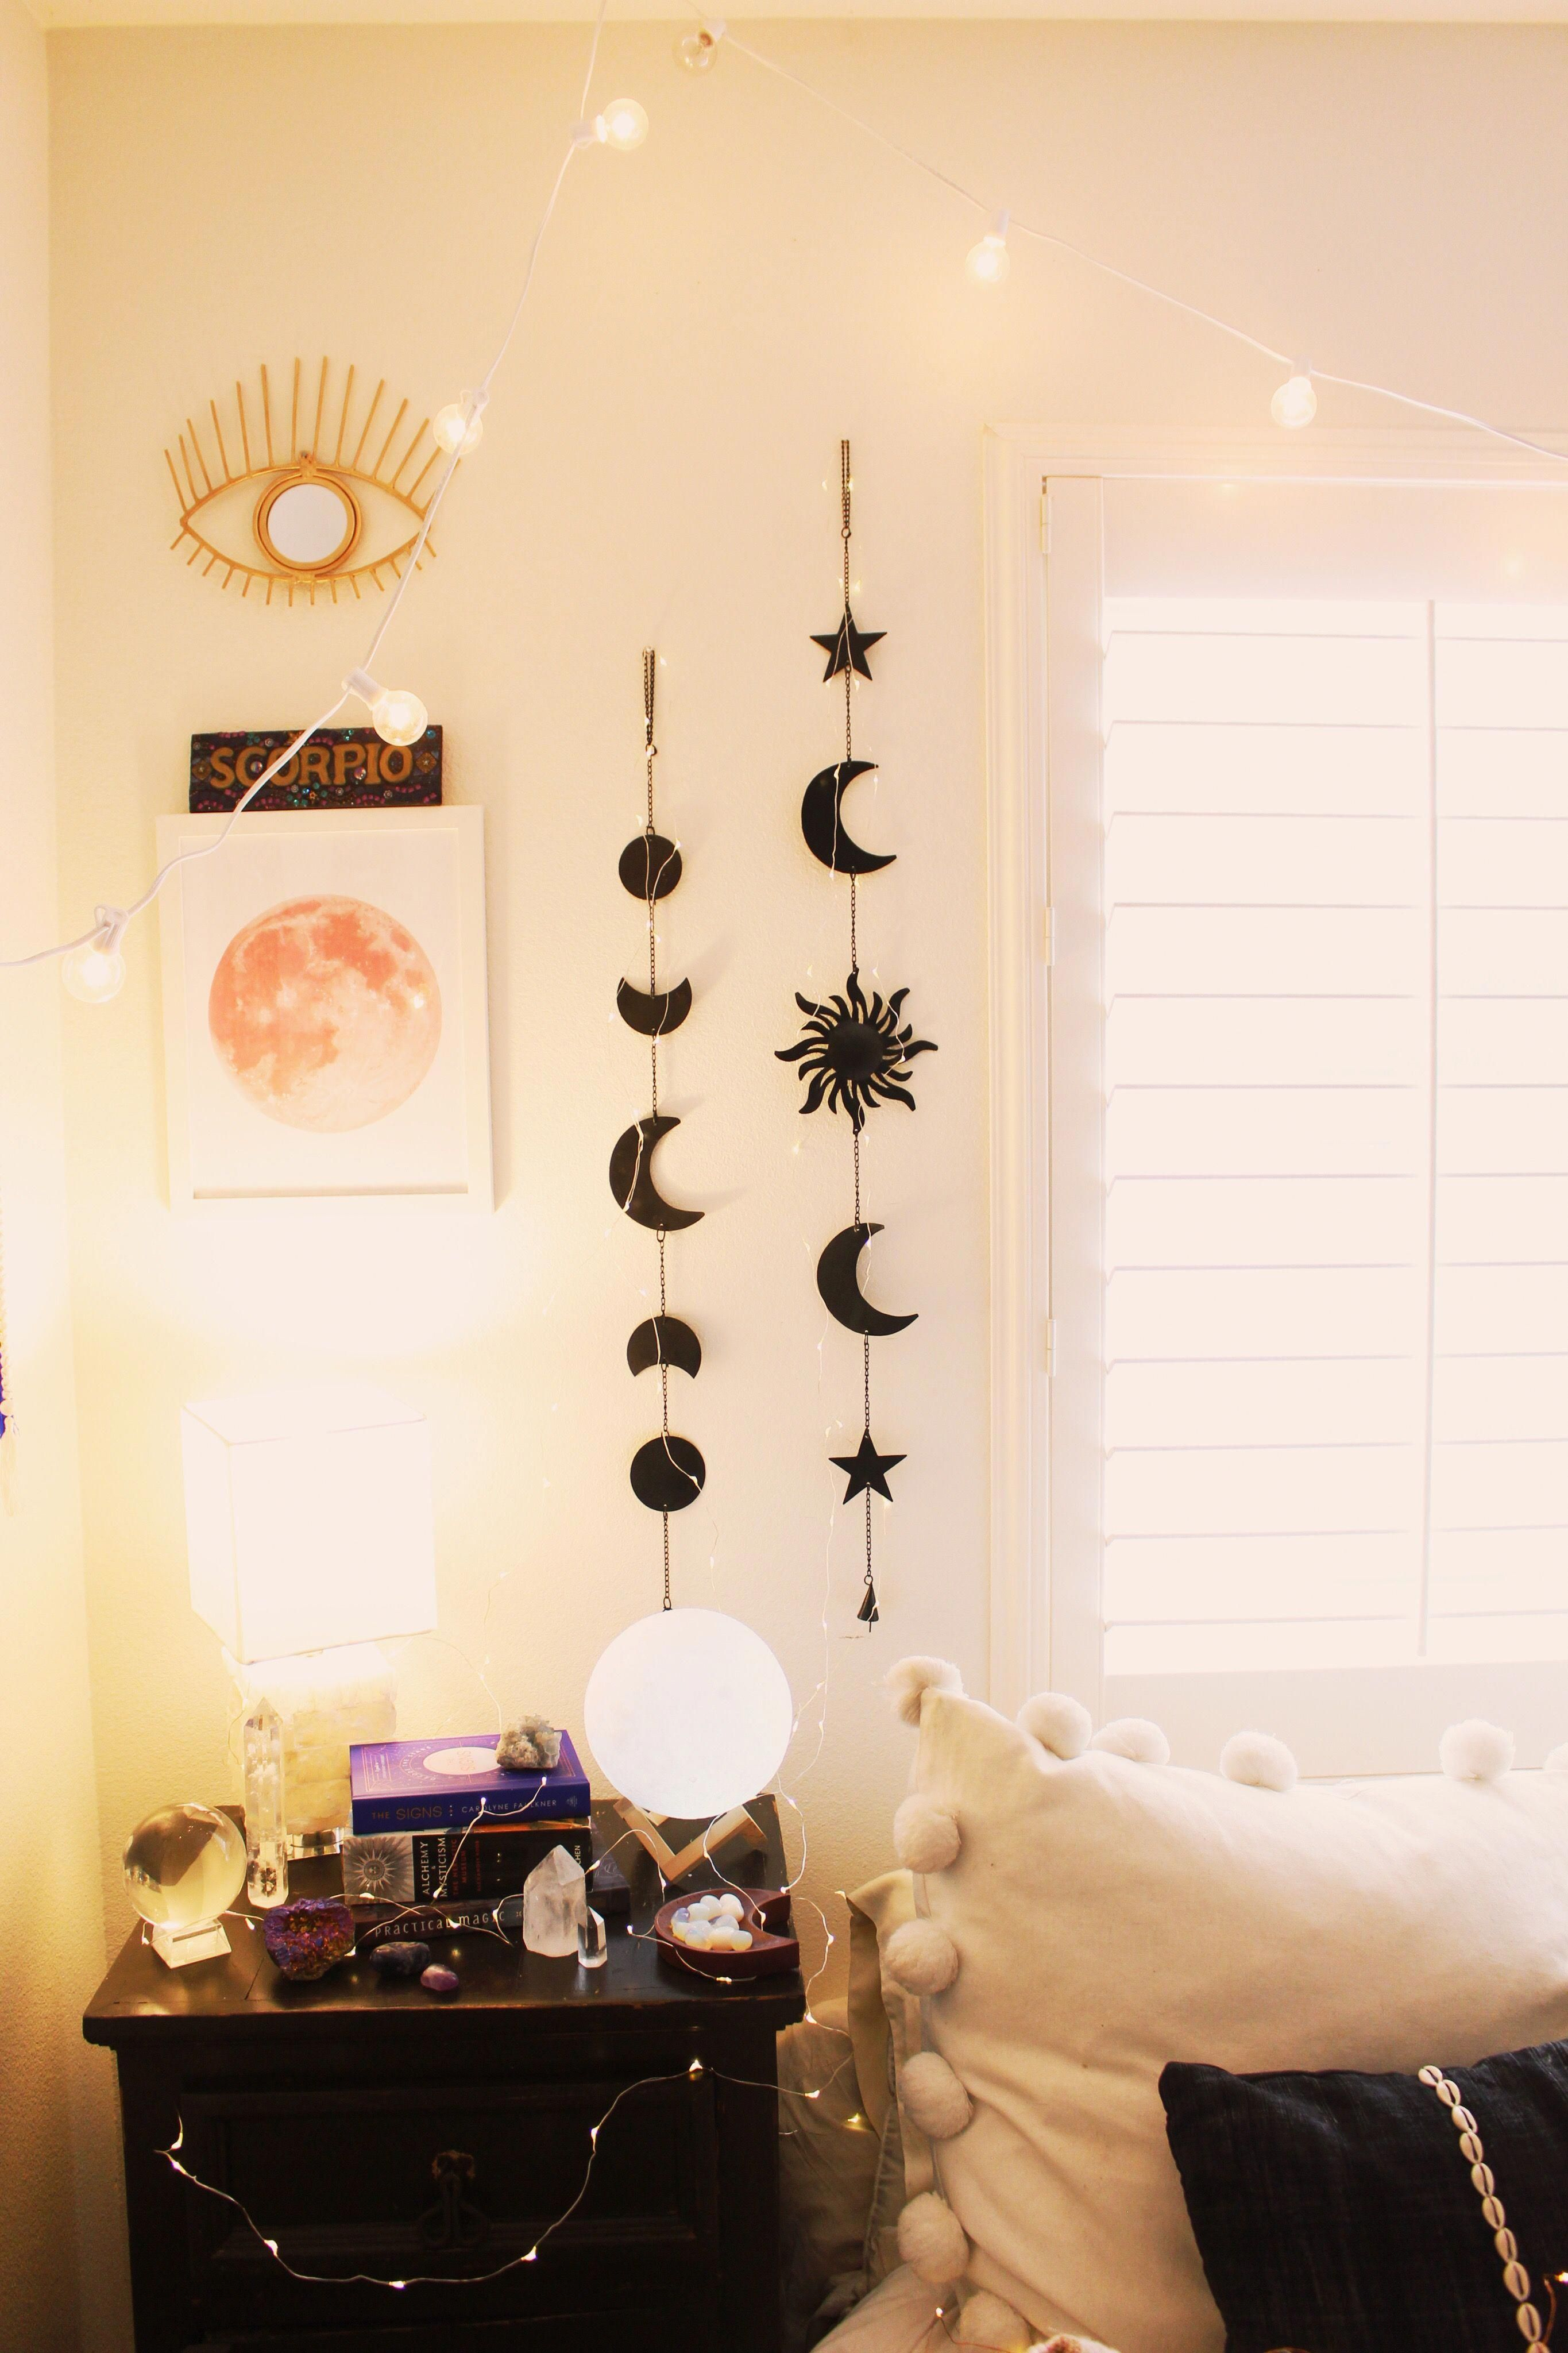 Pin by Trinity Rose Gomez on Moon room | Aesthetic bedroom ...